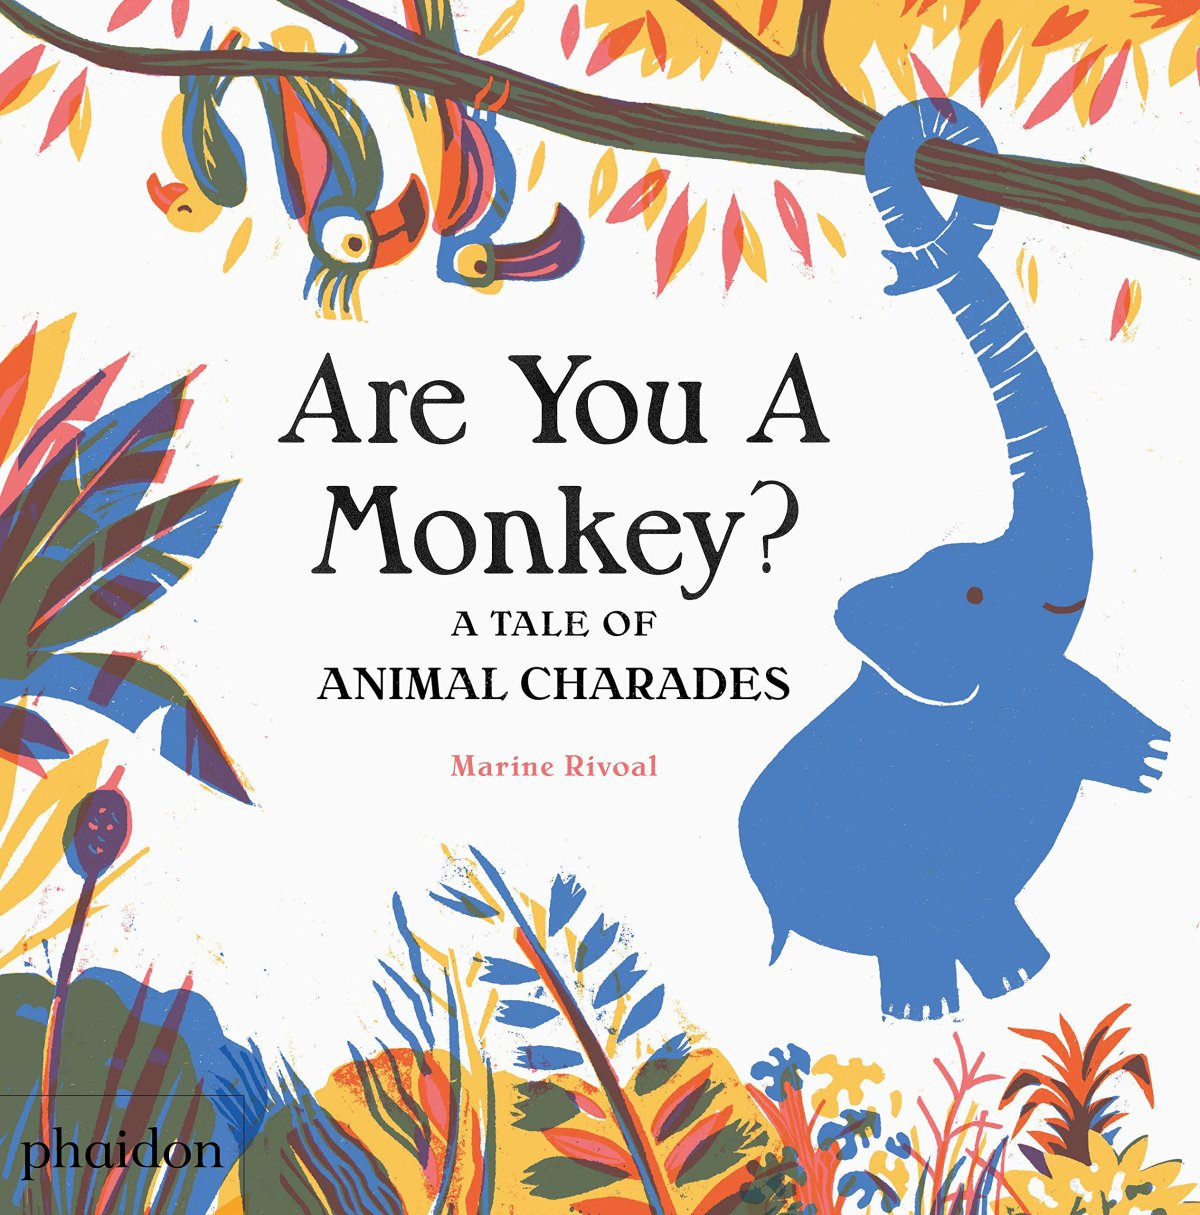 are you a monkey cover image